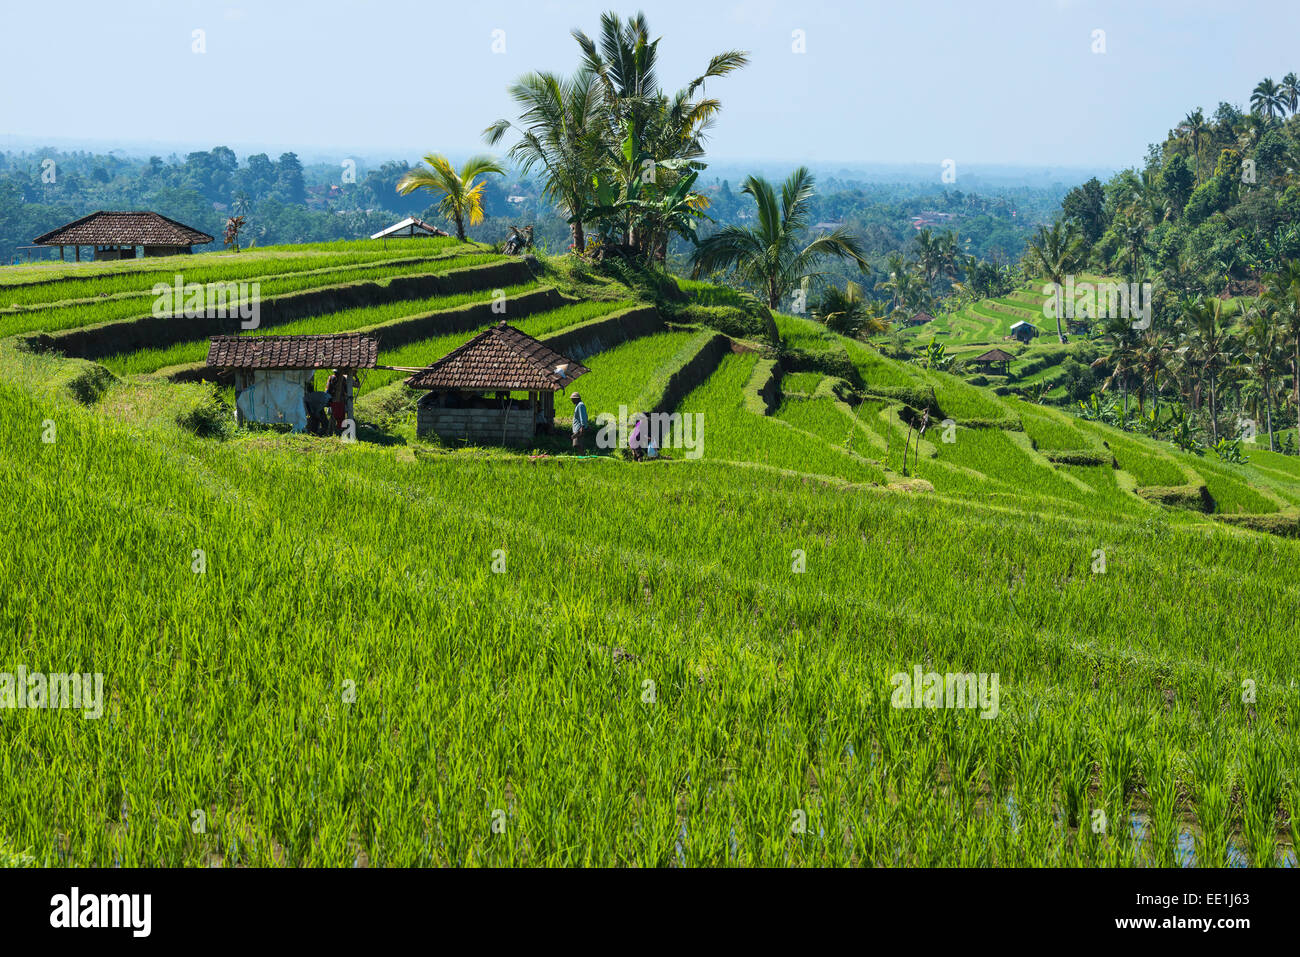 Rice terraces, Jatiluwih, UNESCO World Heritage Site, Bali, Indonesia, Southeast Asia, Asia - Stock Image